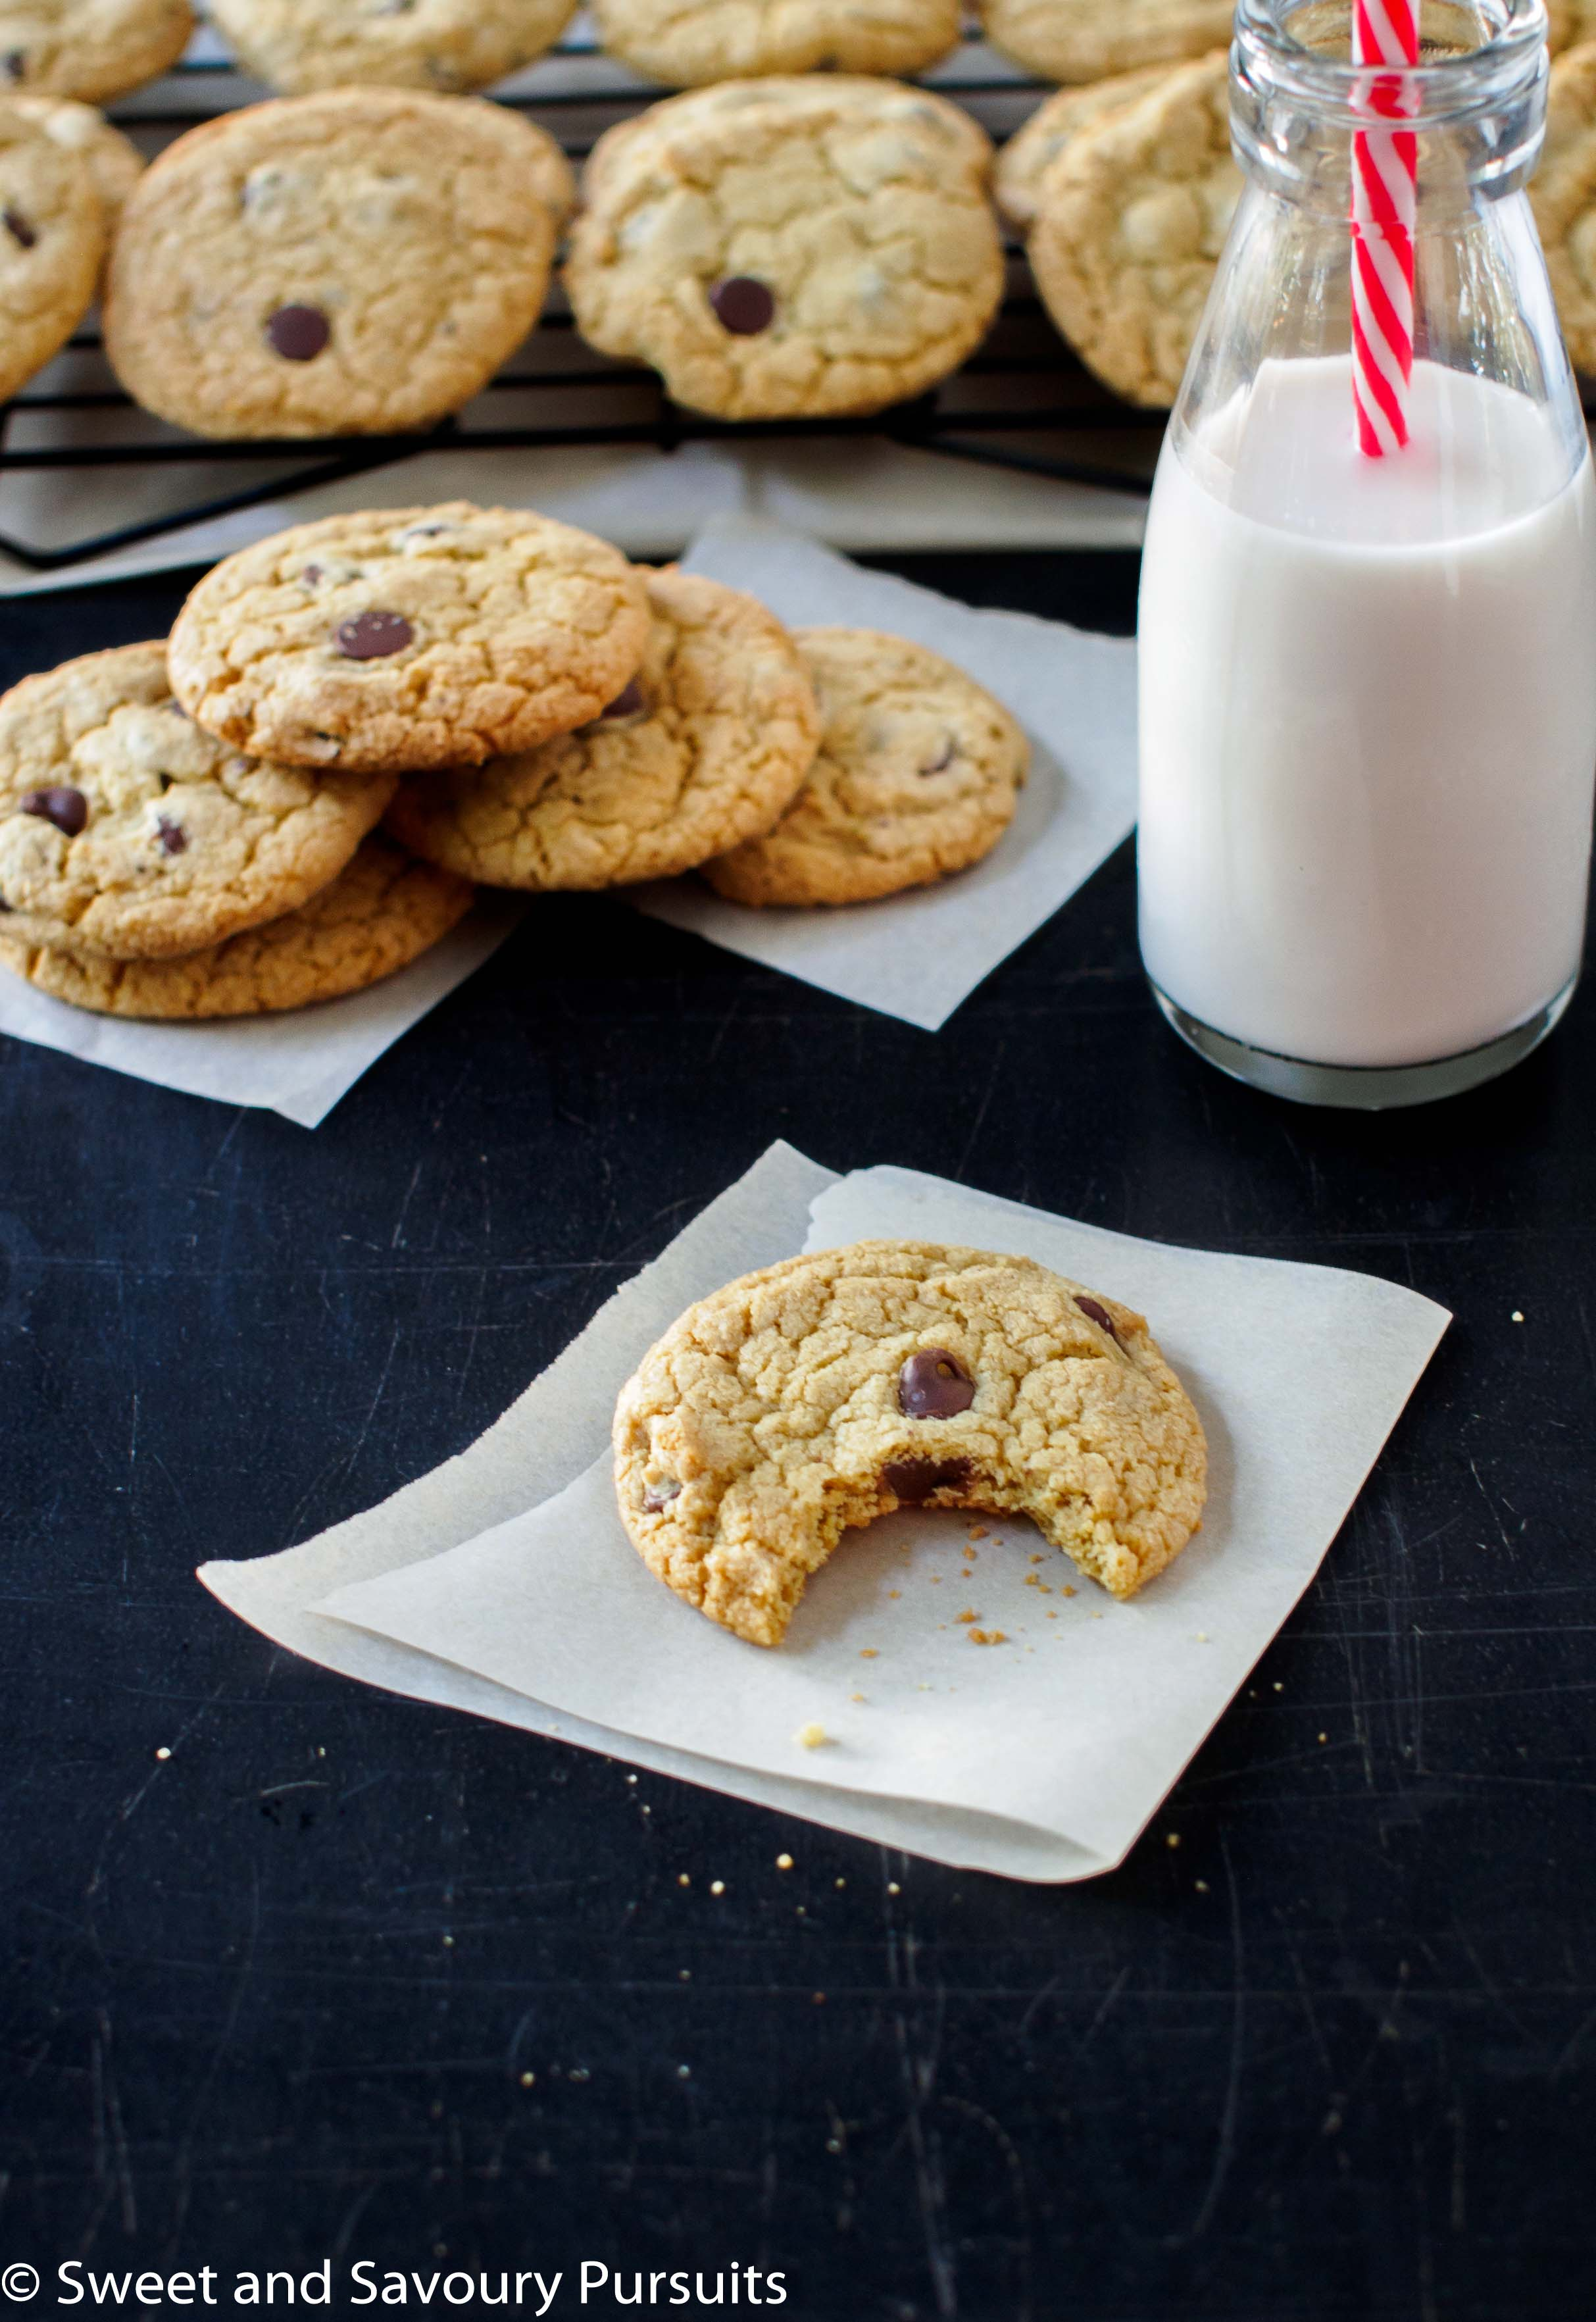 Quinoa Chocolate Chip Cookies served with a small bottle of milk.